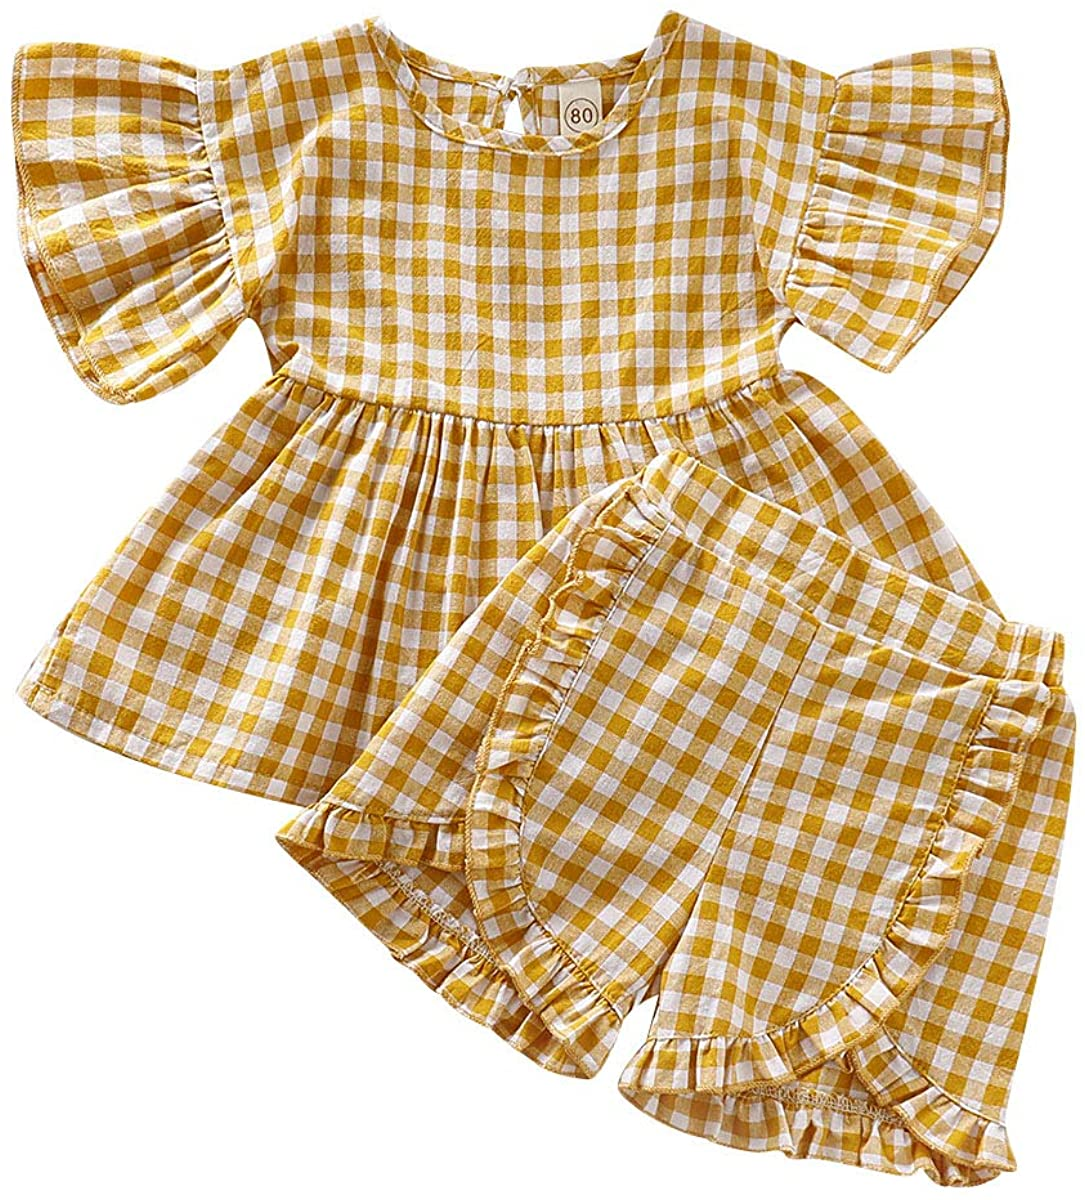 Toddler Baby Girls Plaid Clothes Set Summer Gingham Short Sleeve Ruffle Shirt Tunic Tops+Short Pants 2Pcs Floral Outfits